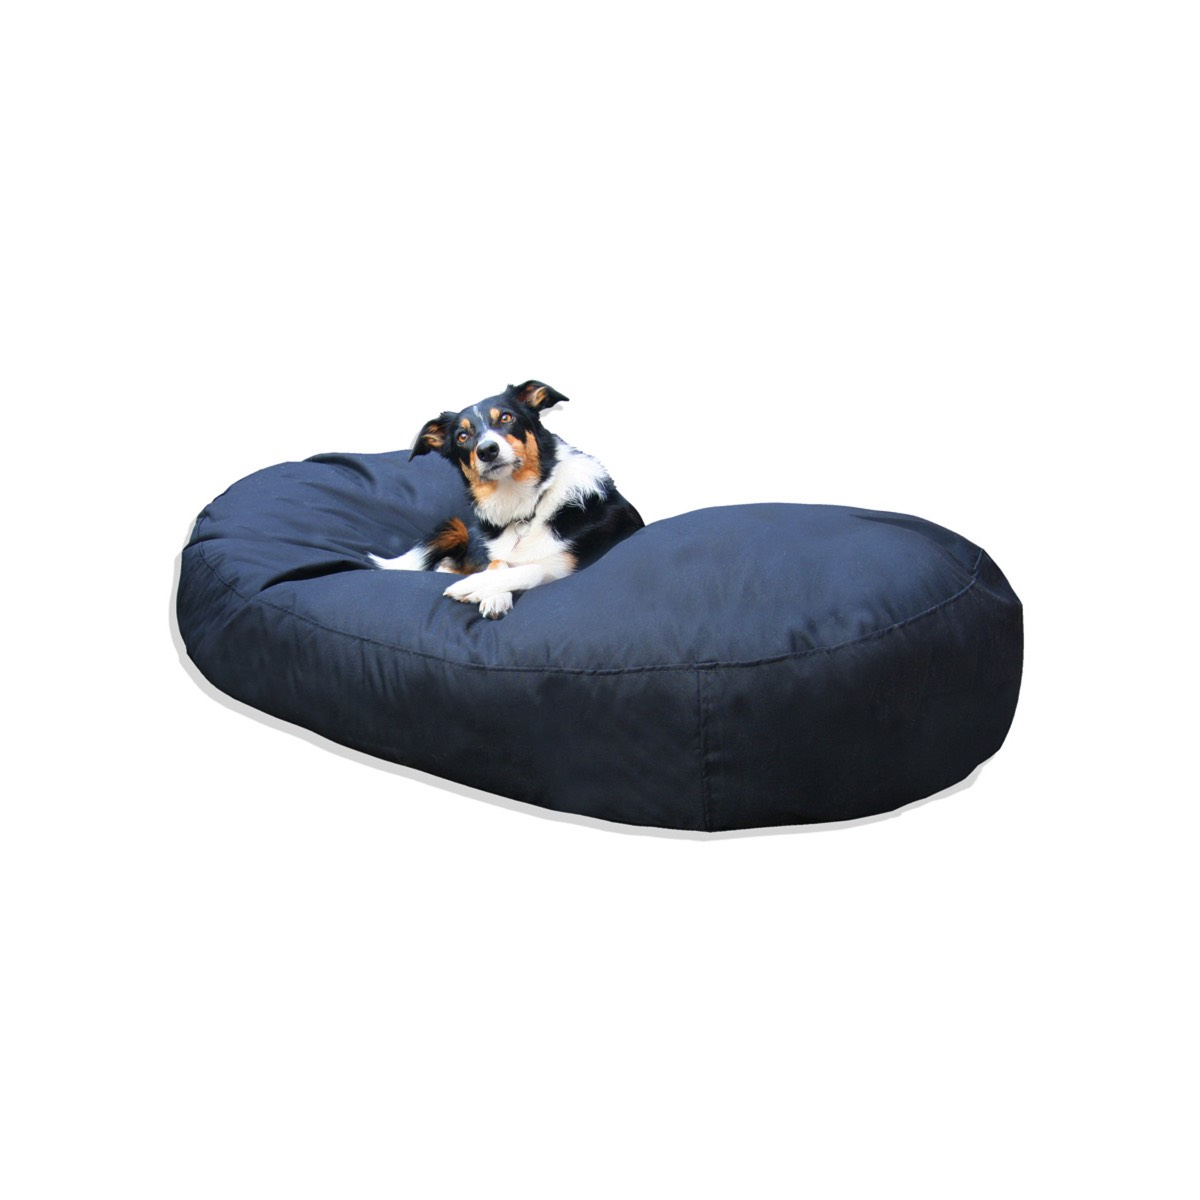 Peachy Big Oval Dog Bed Bean Bag Squirreltailoven Fun Painted Chair Ideas Images Squirreltailovenorg